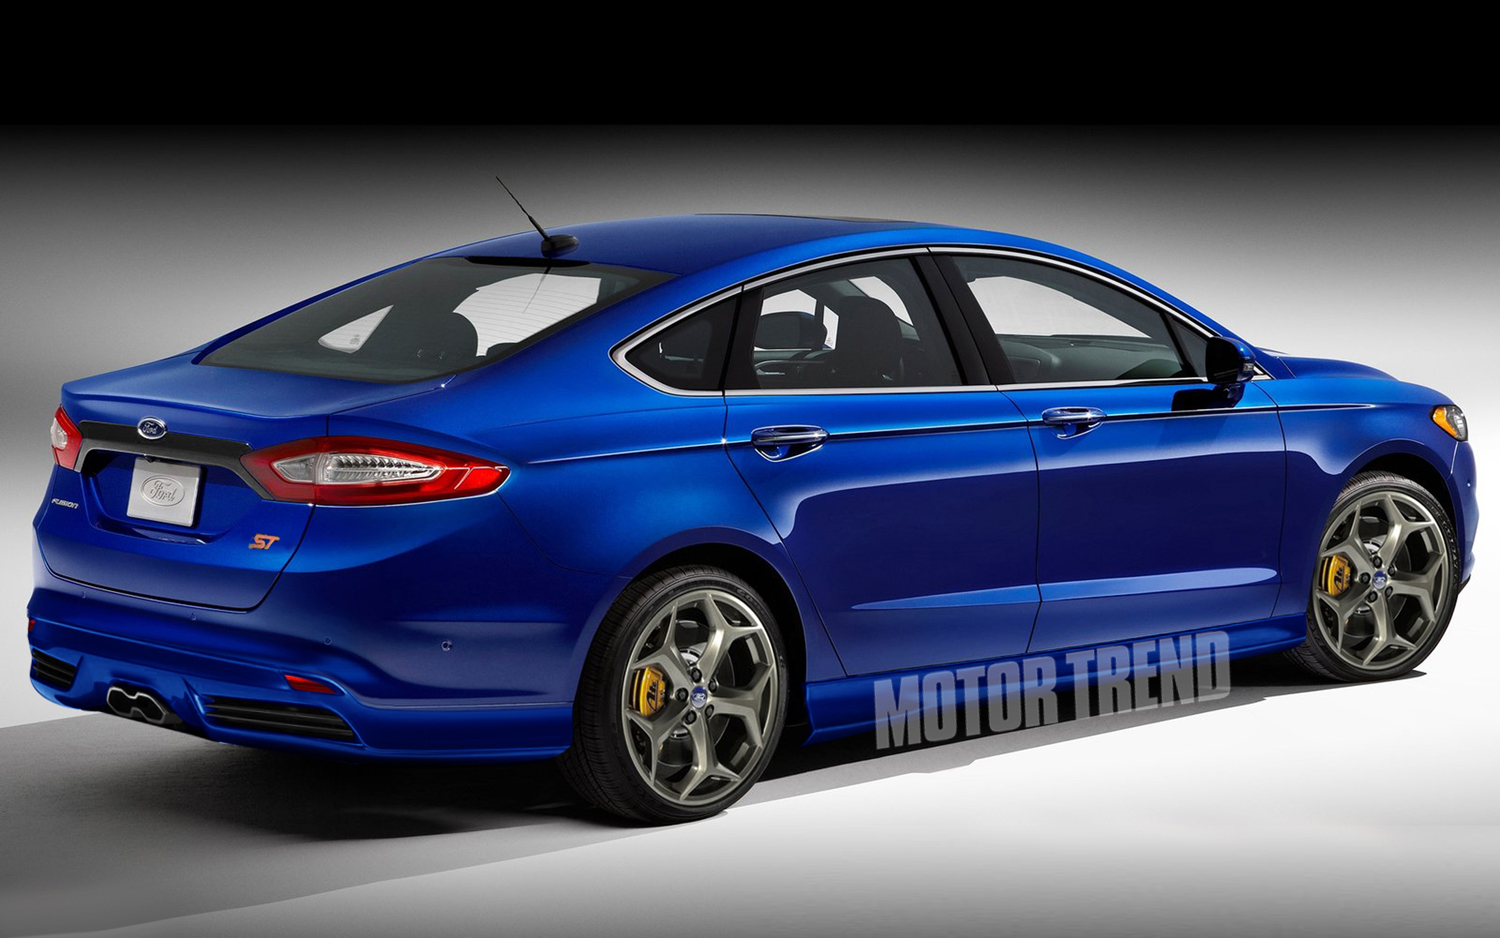 2014 Ford Fusion Tires >> Focus ST wheels on new Fusion